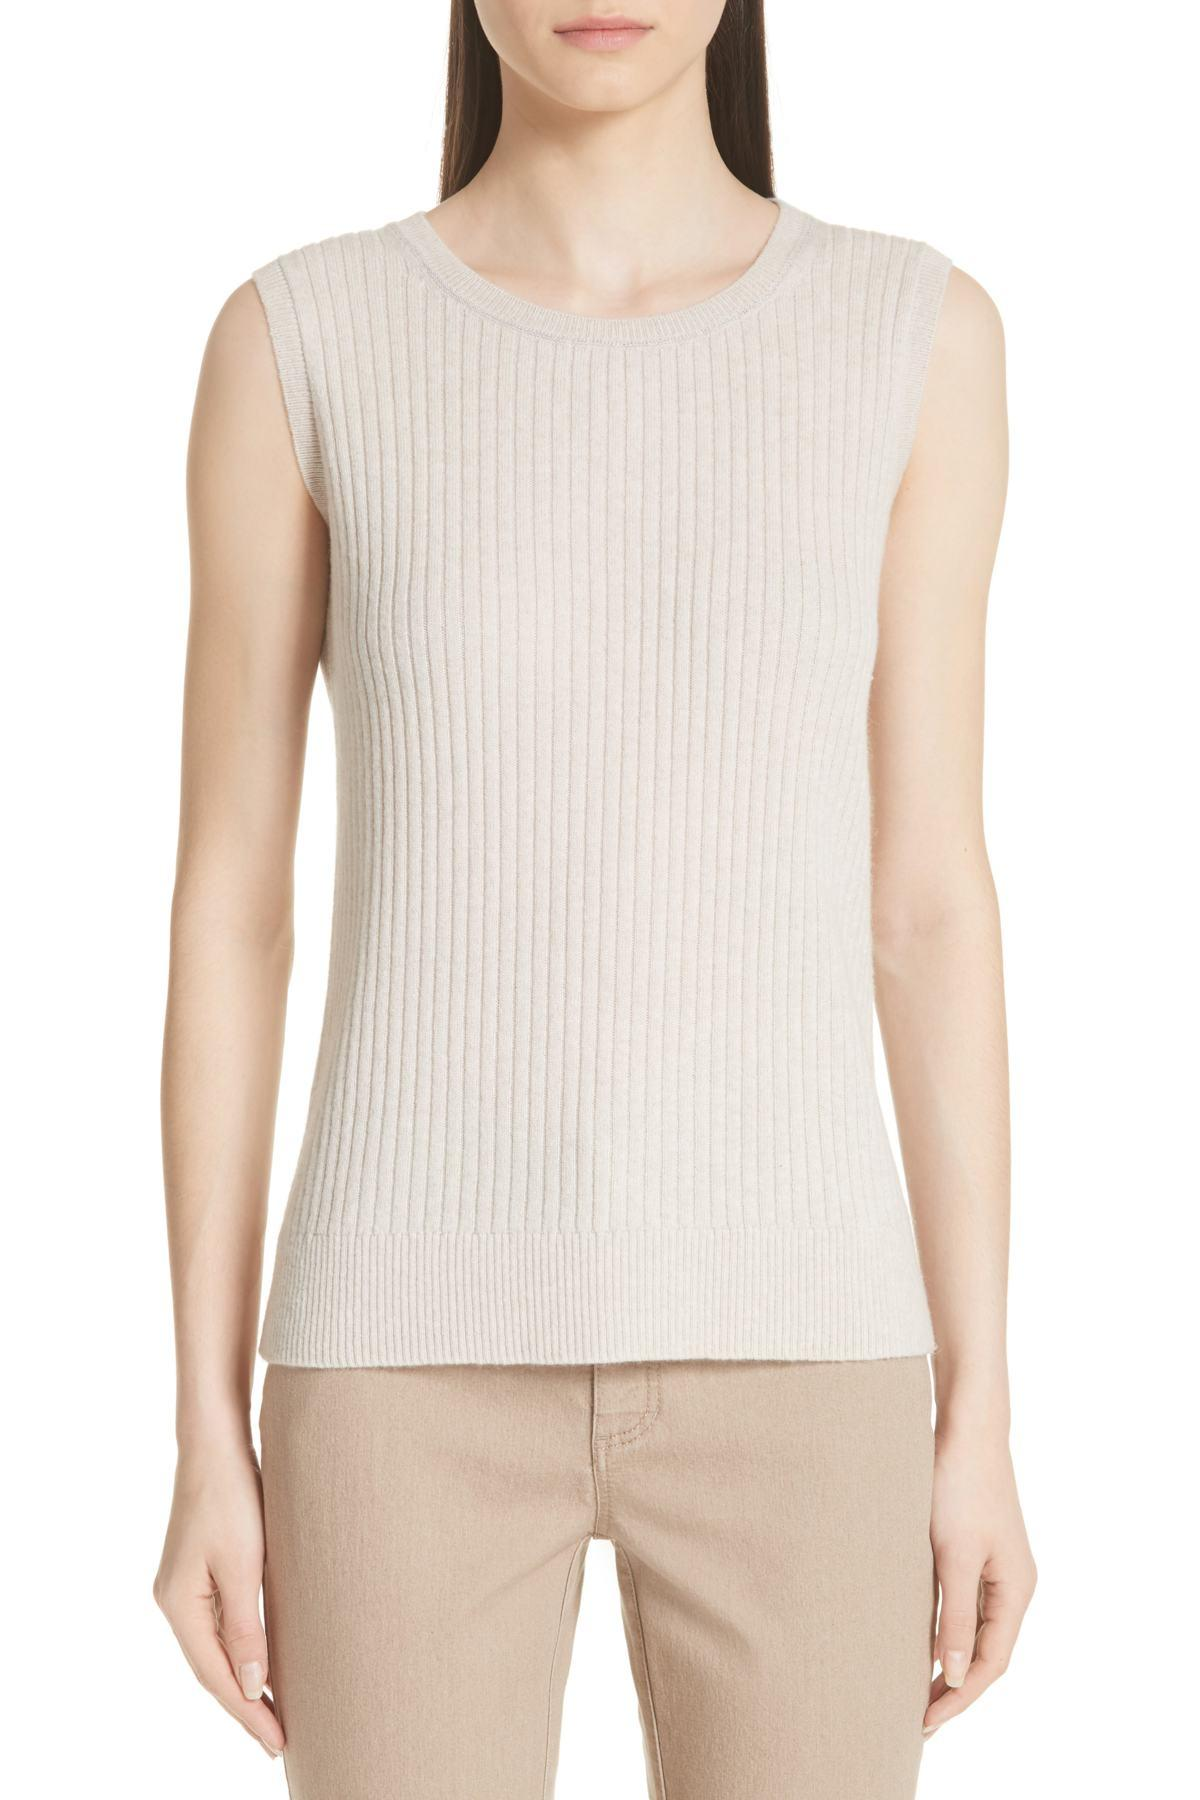 e330f5c62df266 Lyst - Lafayette 148 New York Ribbed Cashmere Tank Top (nordstrom ...